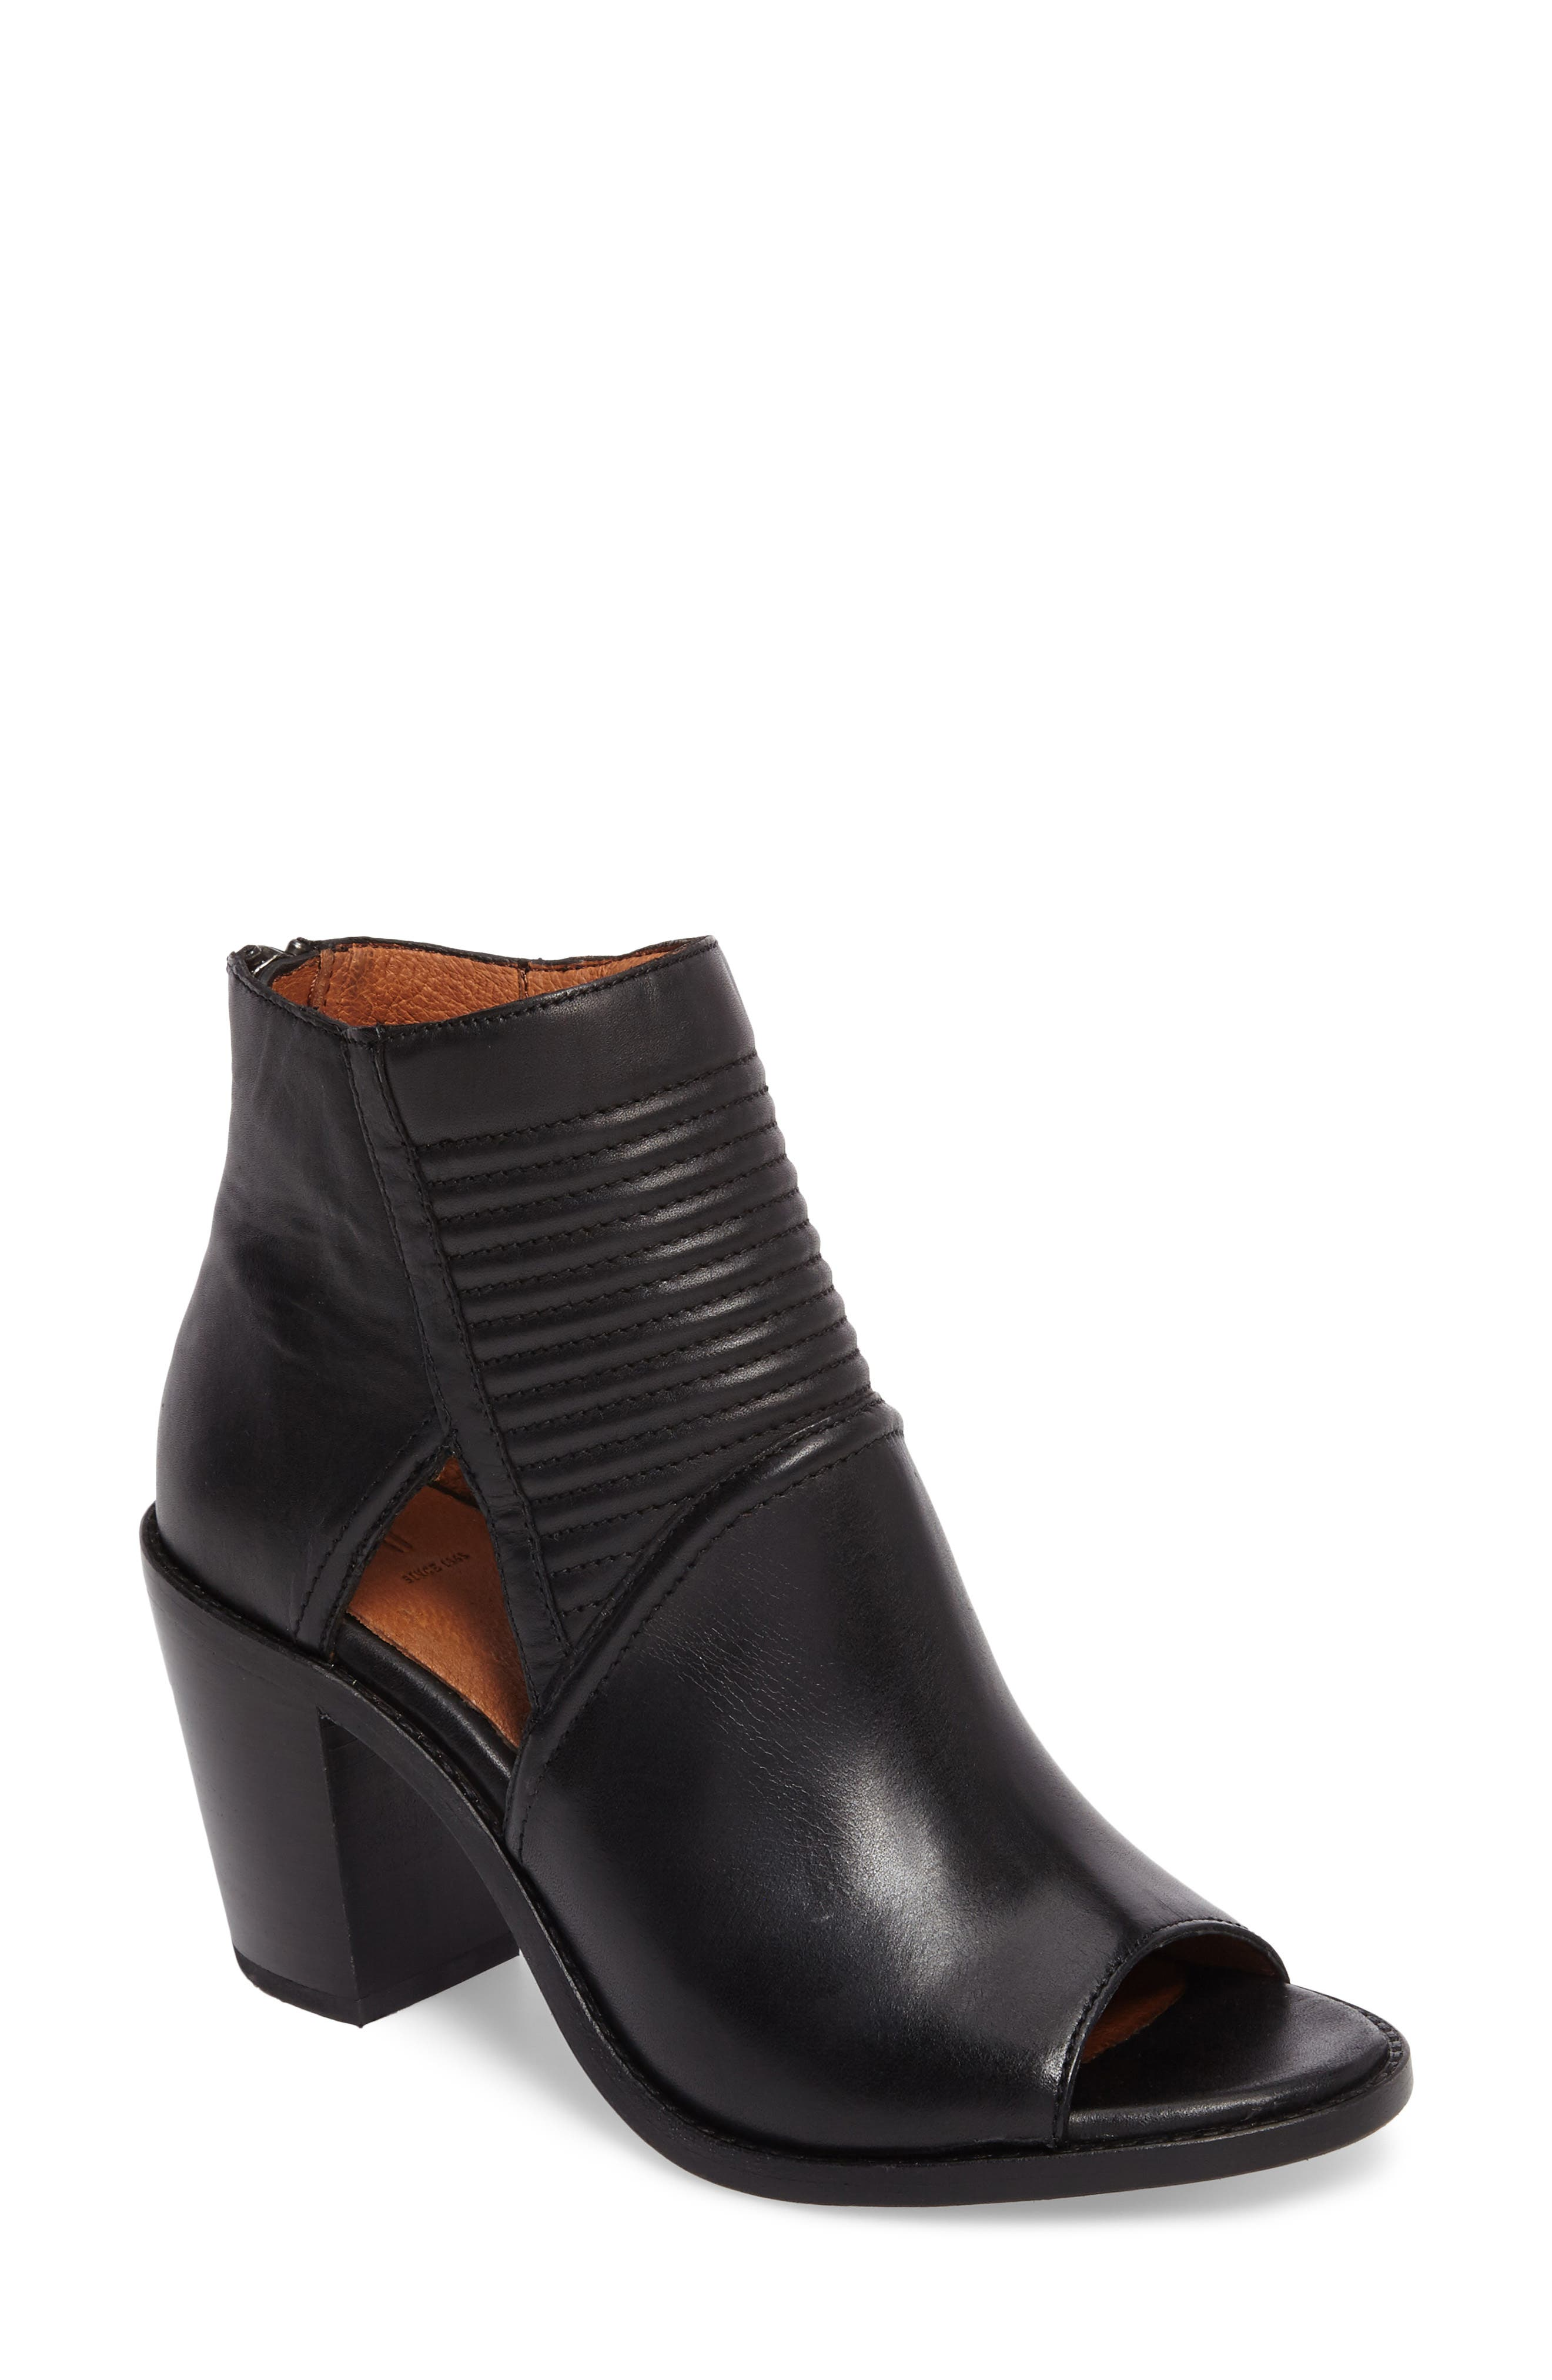 Main Image - Frye Bailey Quilted Peep Toe Bootie (Women)